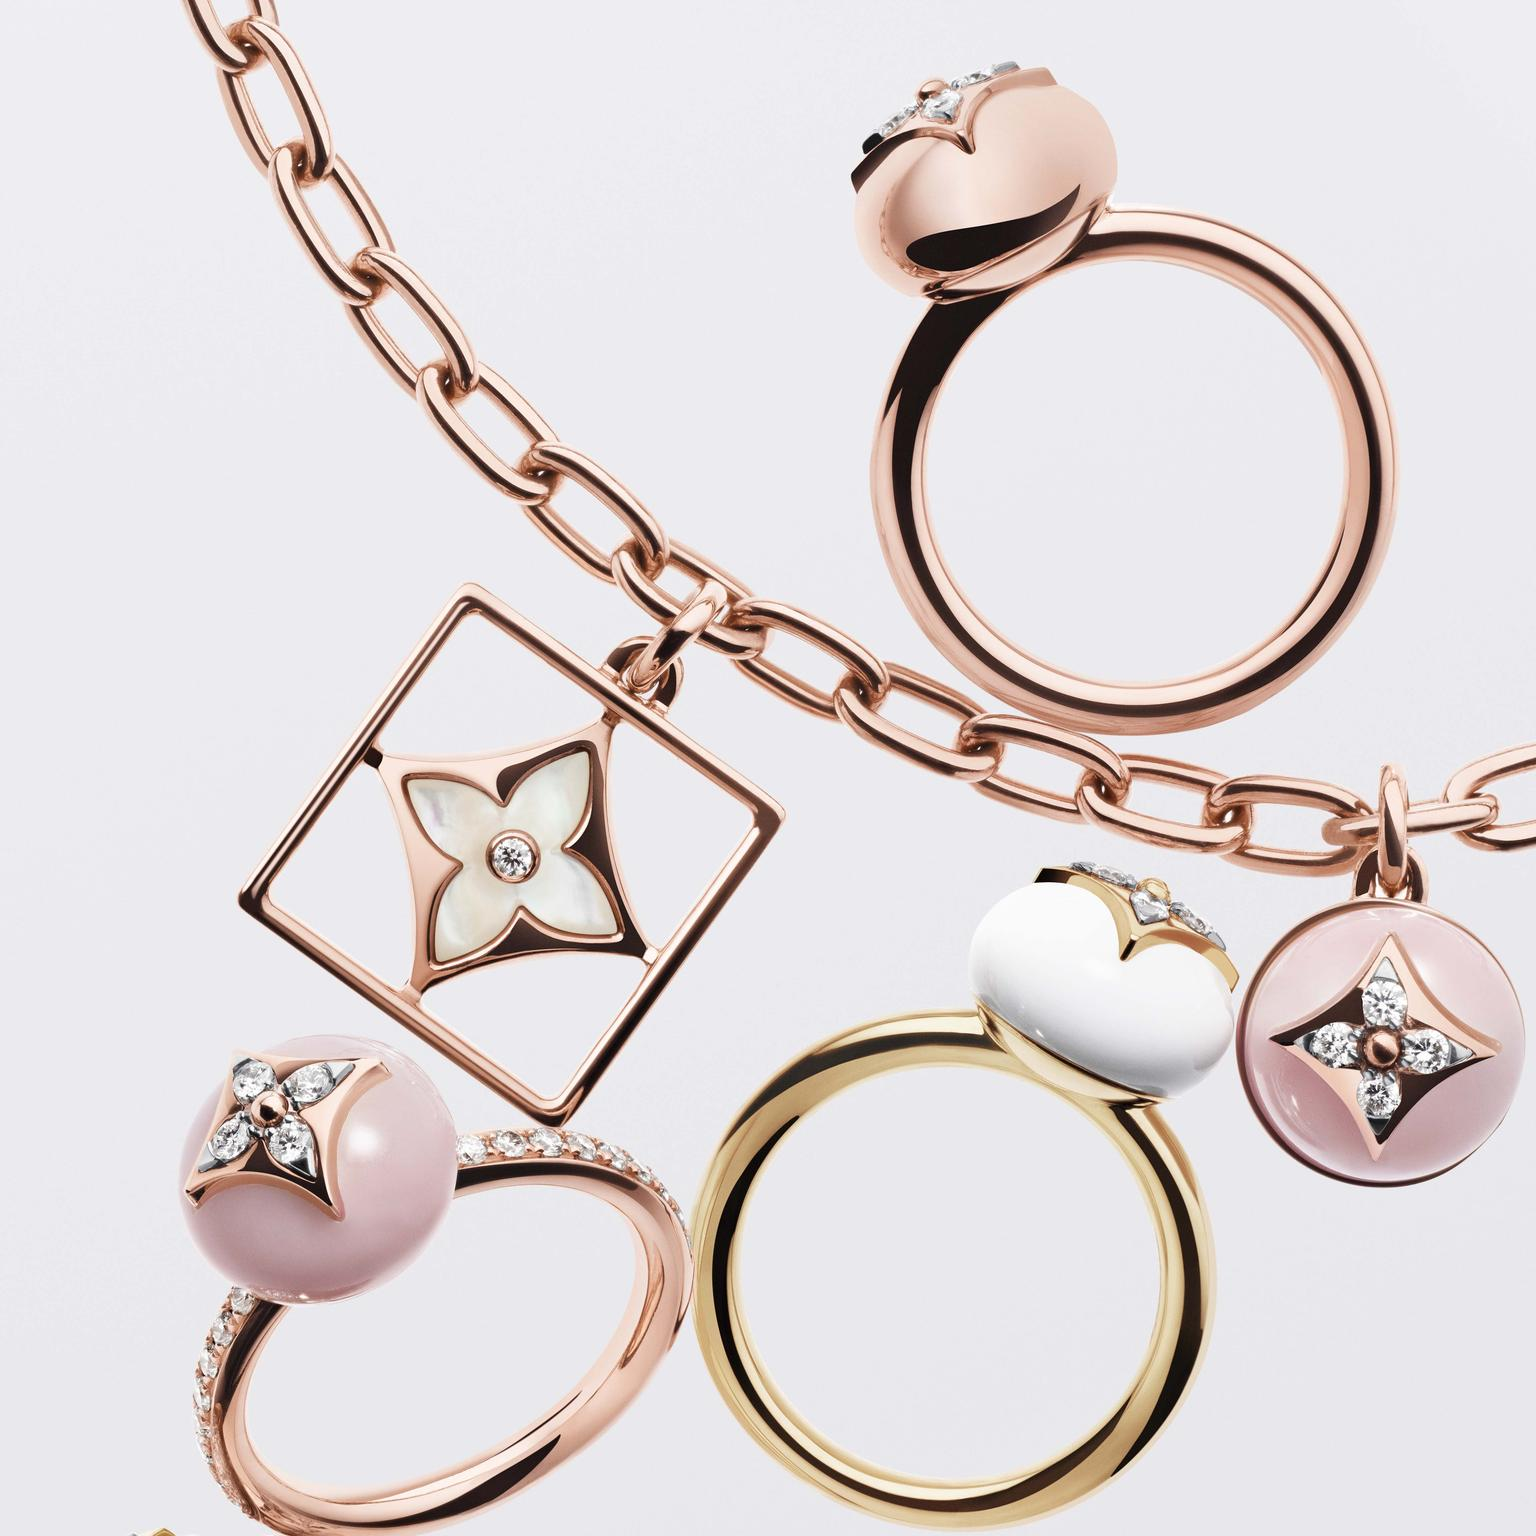 Louis Vuitton B Blossom rings and necklace